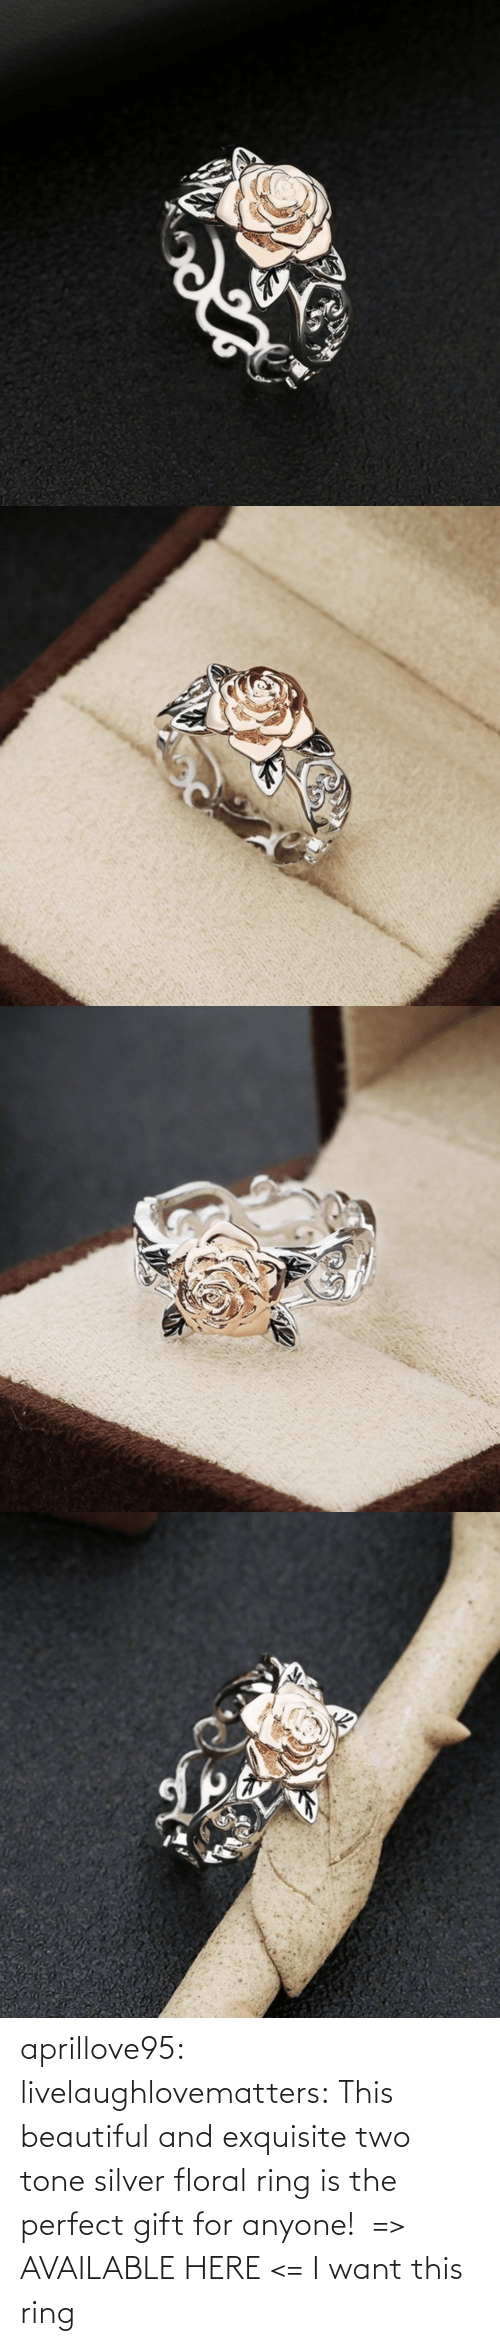 ring: aprillove95: livelaughlovematters:  This beautiful and exquisite two tone silver floral ring is the perfect gift for anyone!  => AVAILABLE HERE <=    I want this ring